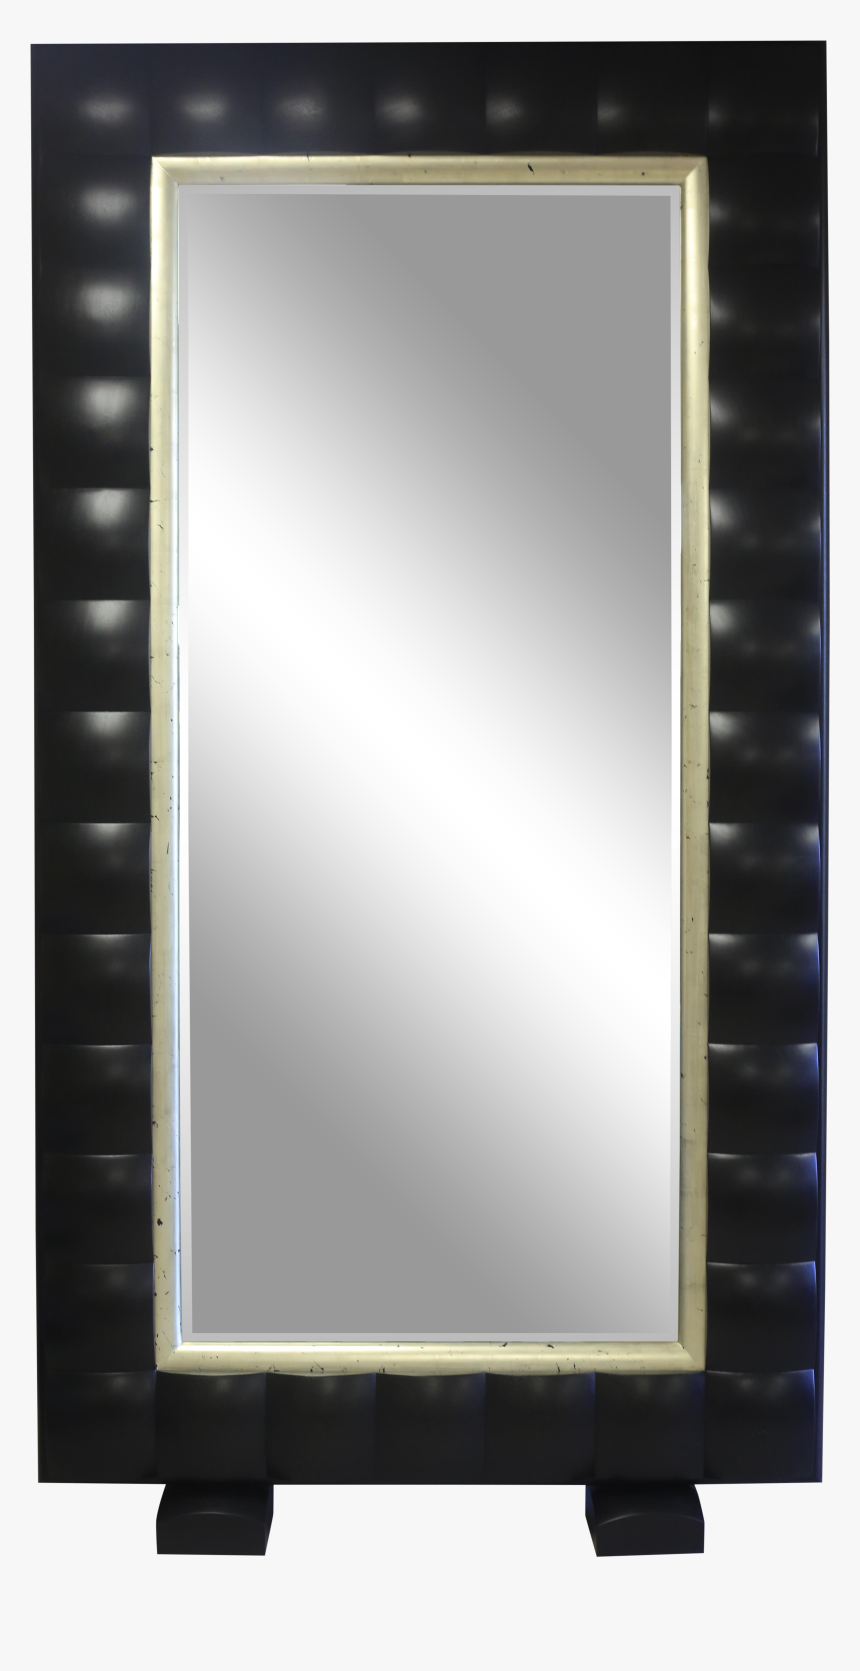 Mirror, HD Png Download, Free Download